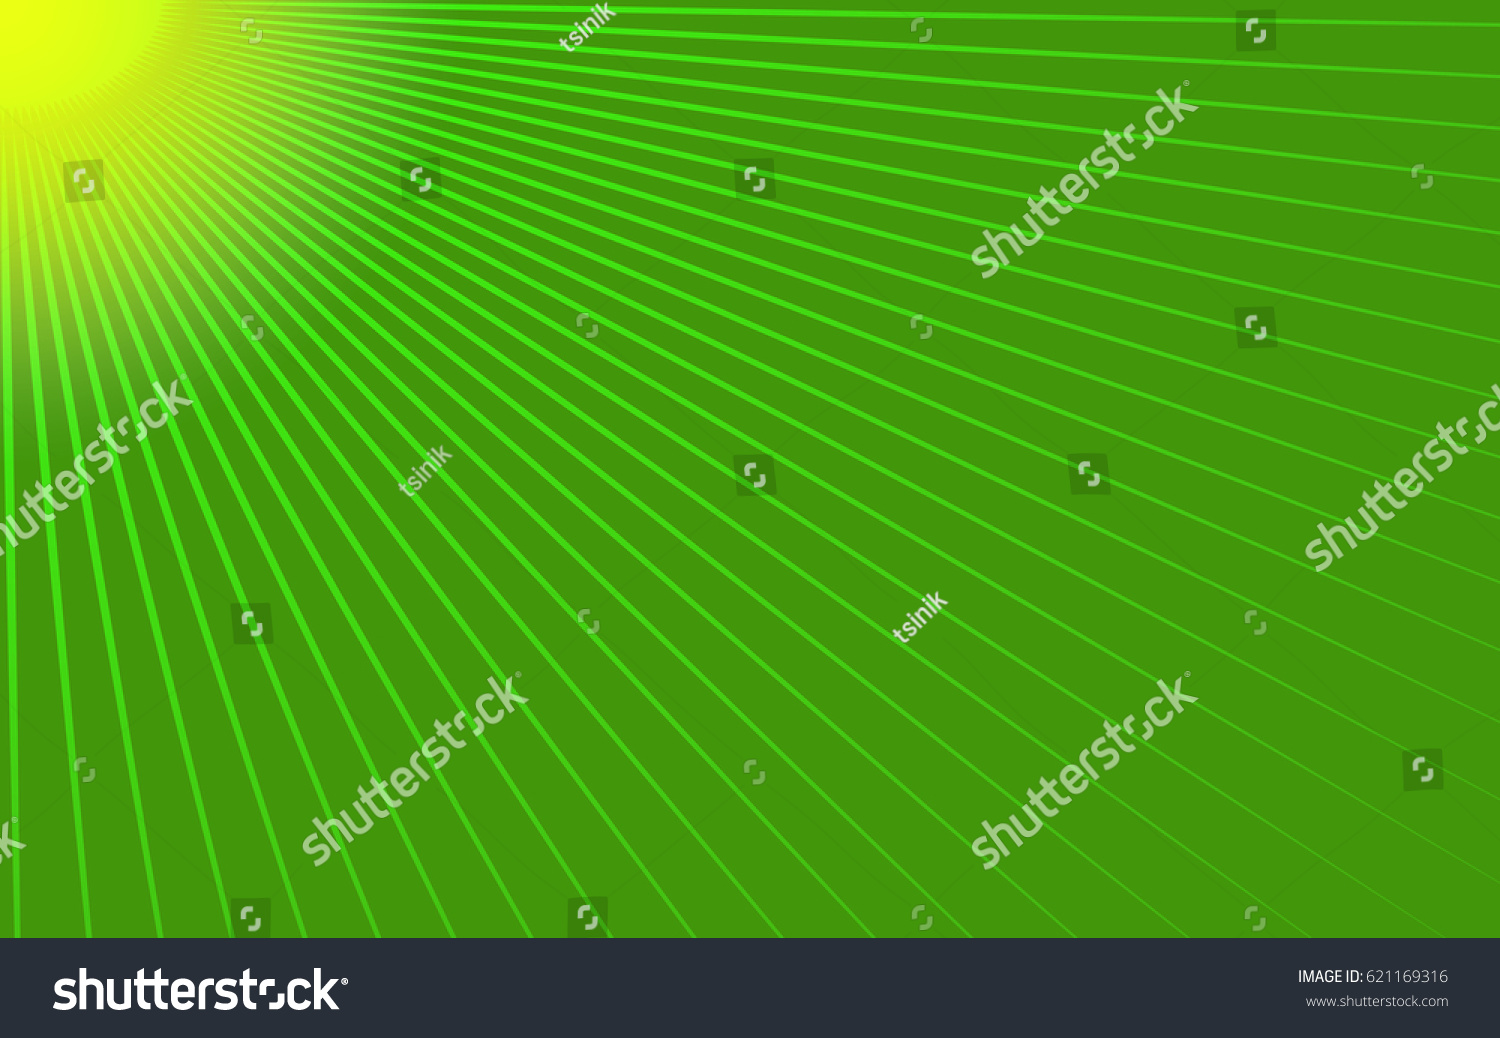 rays on the green